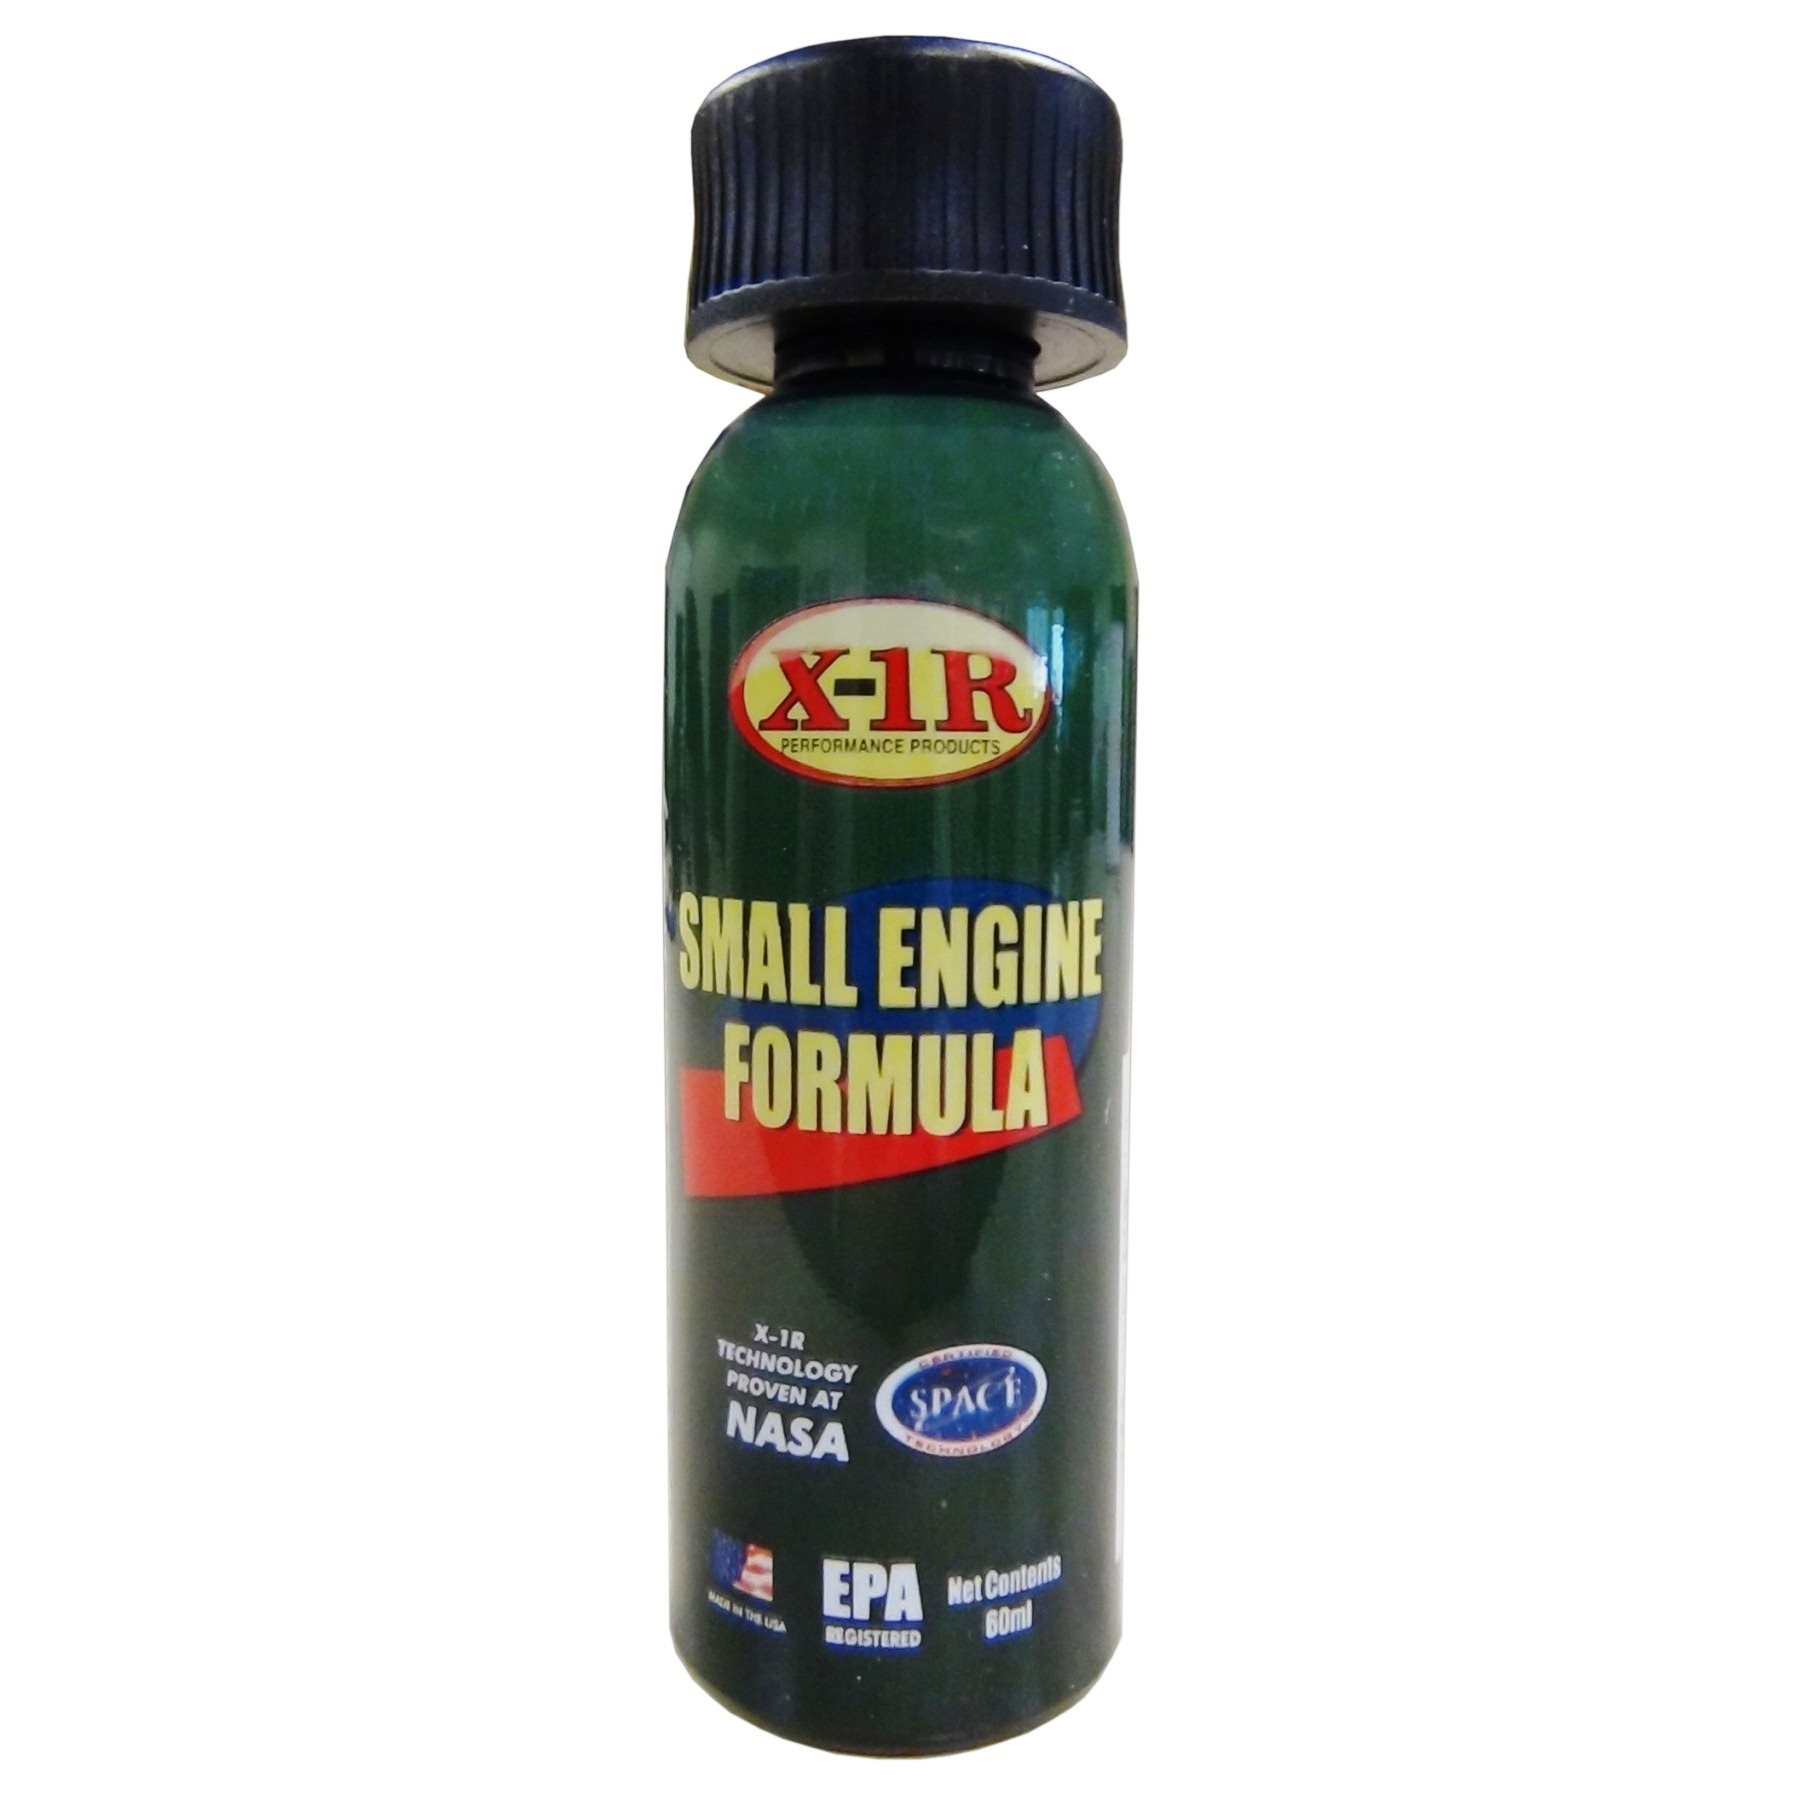 X-1R Small Engine Formula 50ml